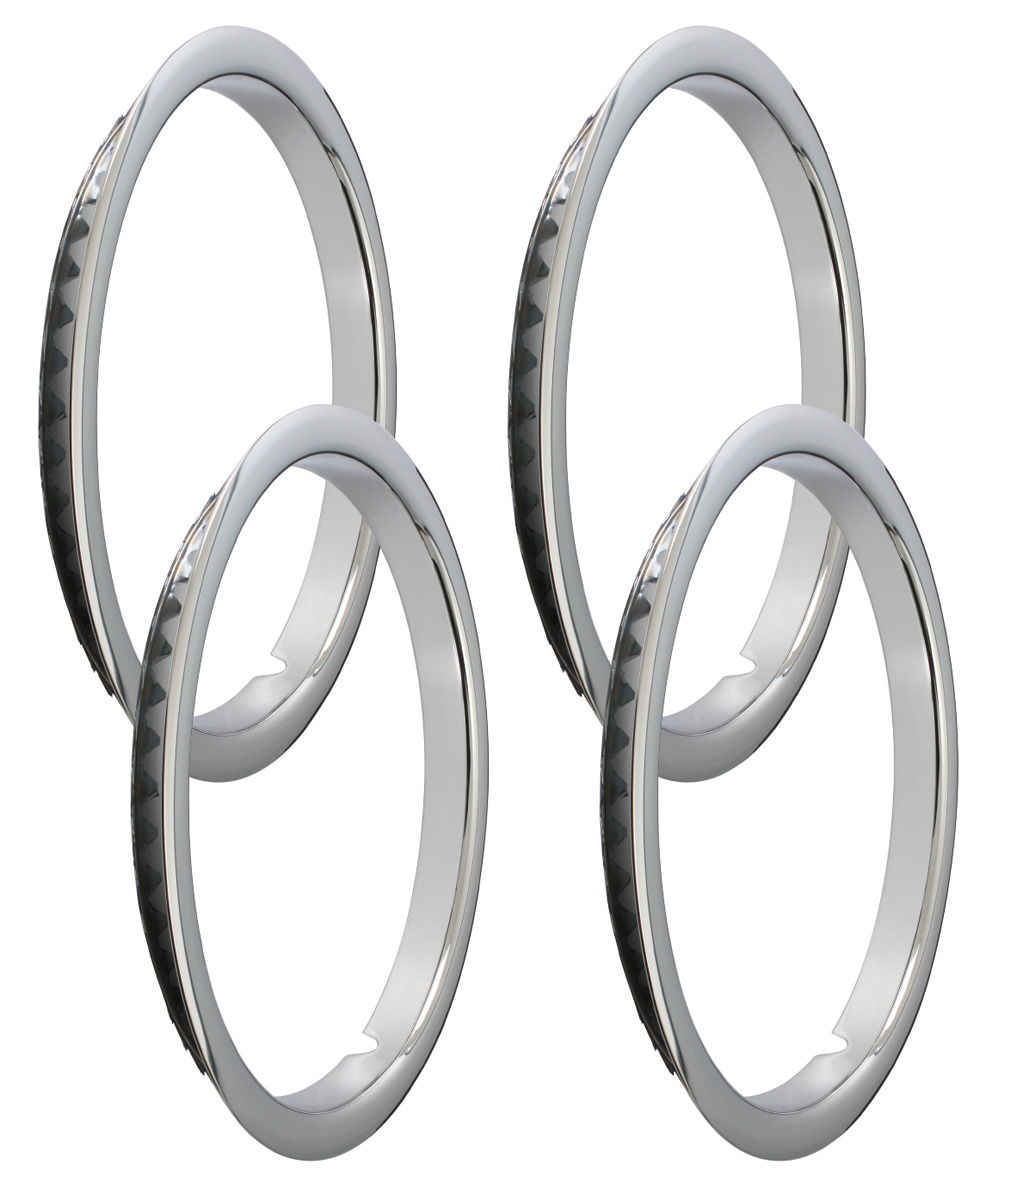 "Photo of Wheel Trim Rings, Reproduction Stainless Rally Oem Lip 15"" SS (1-1/4"" deep)"